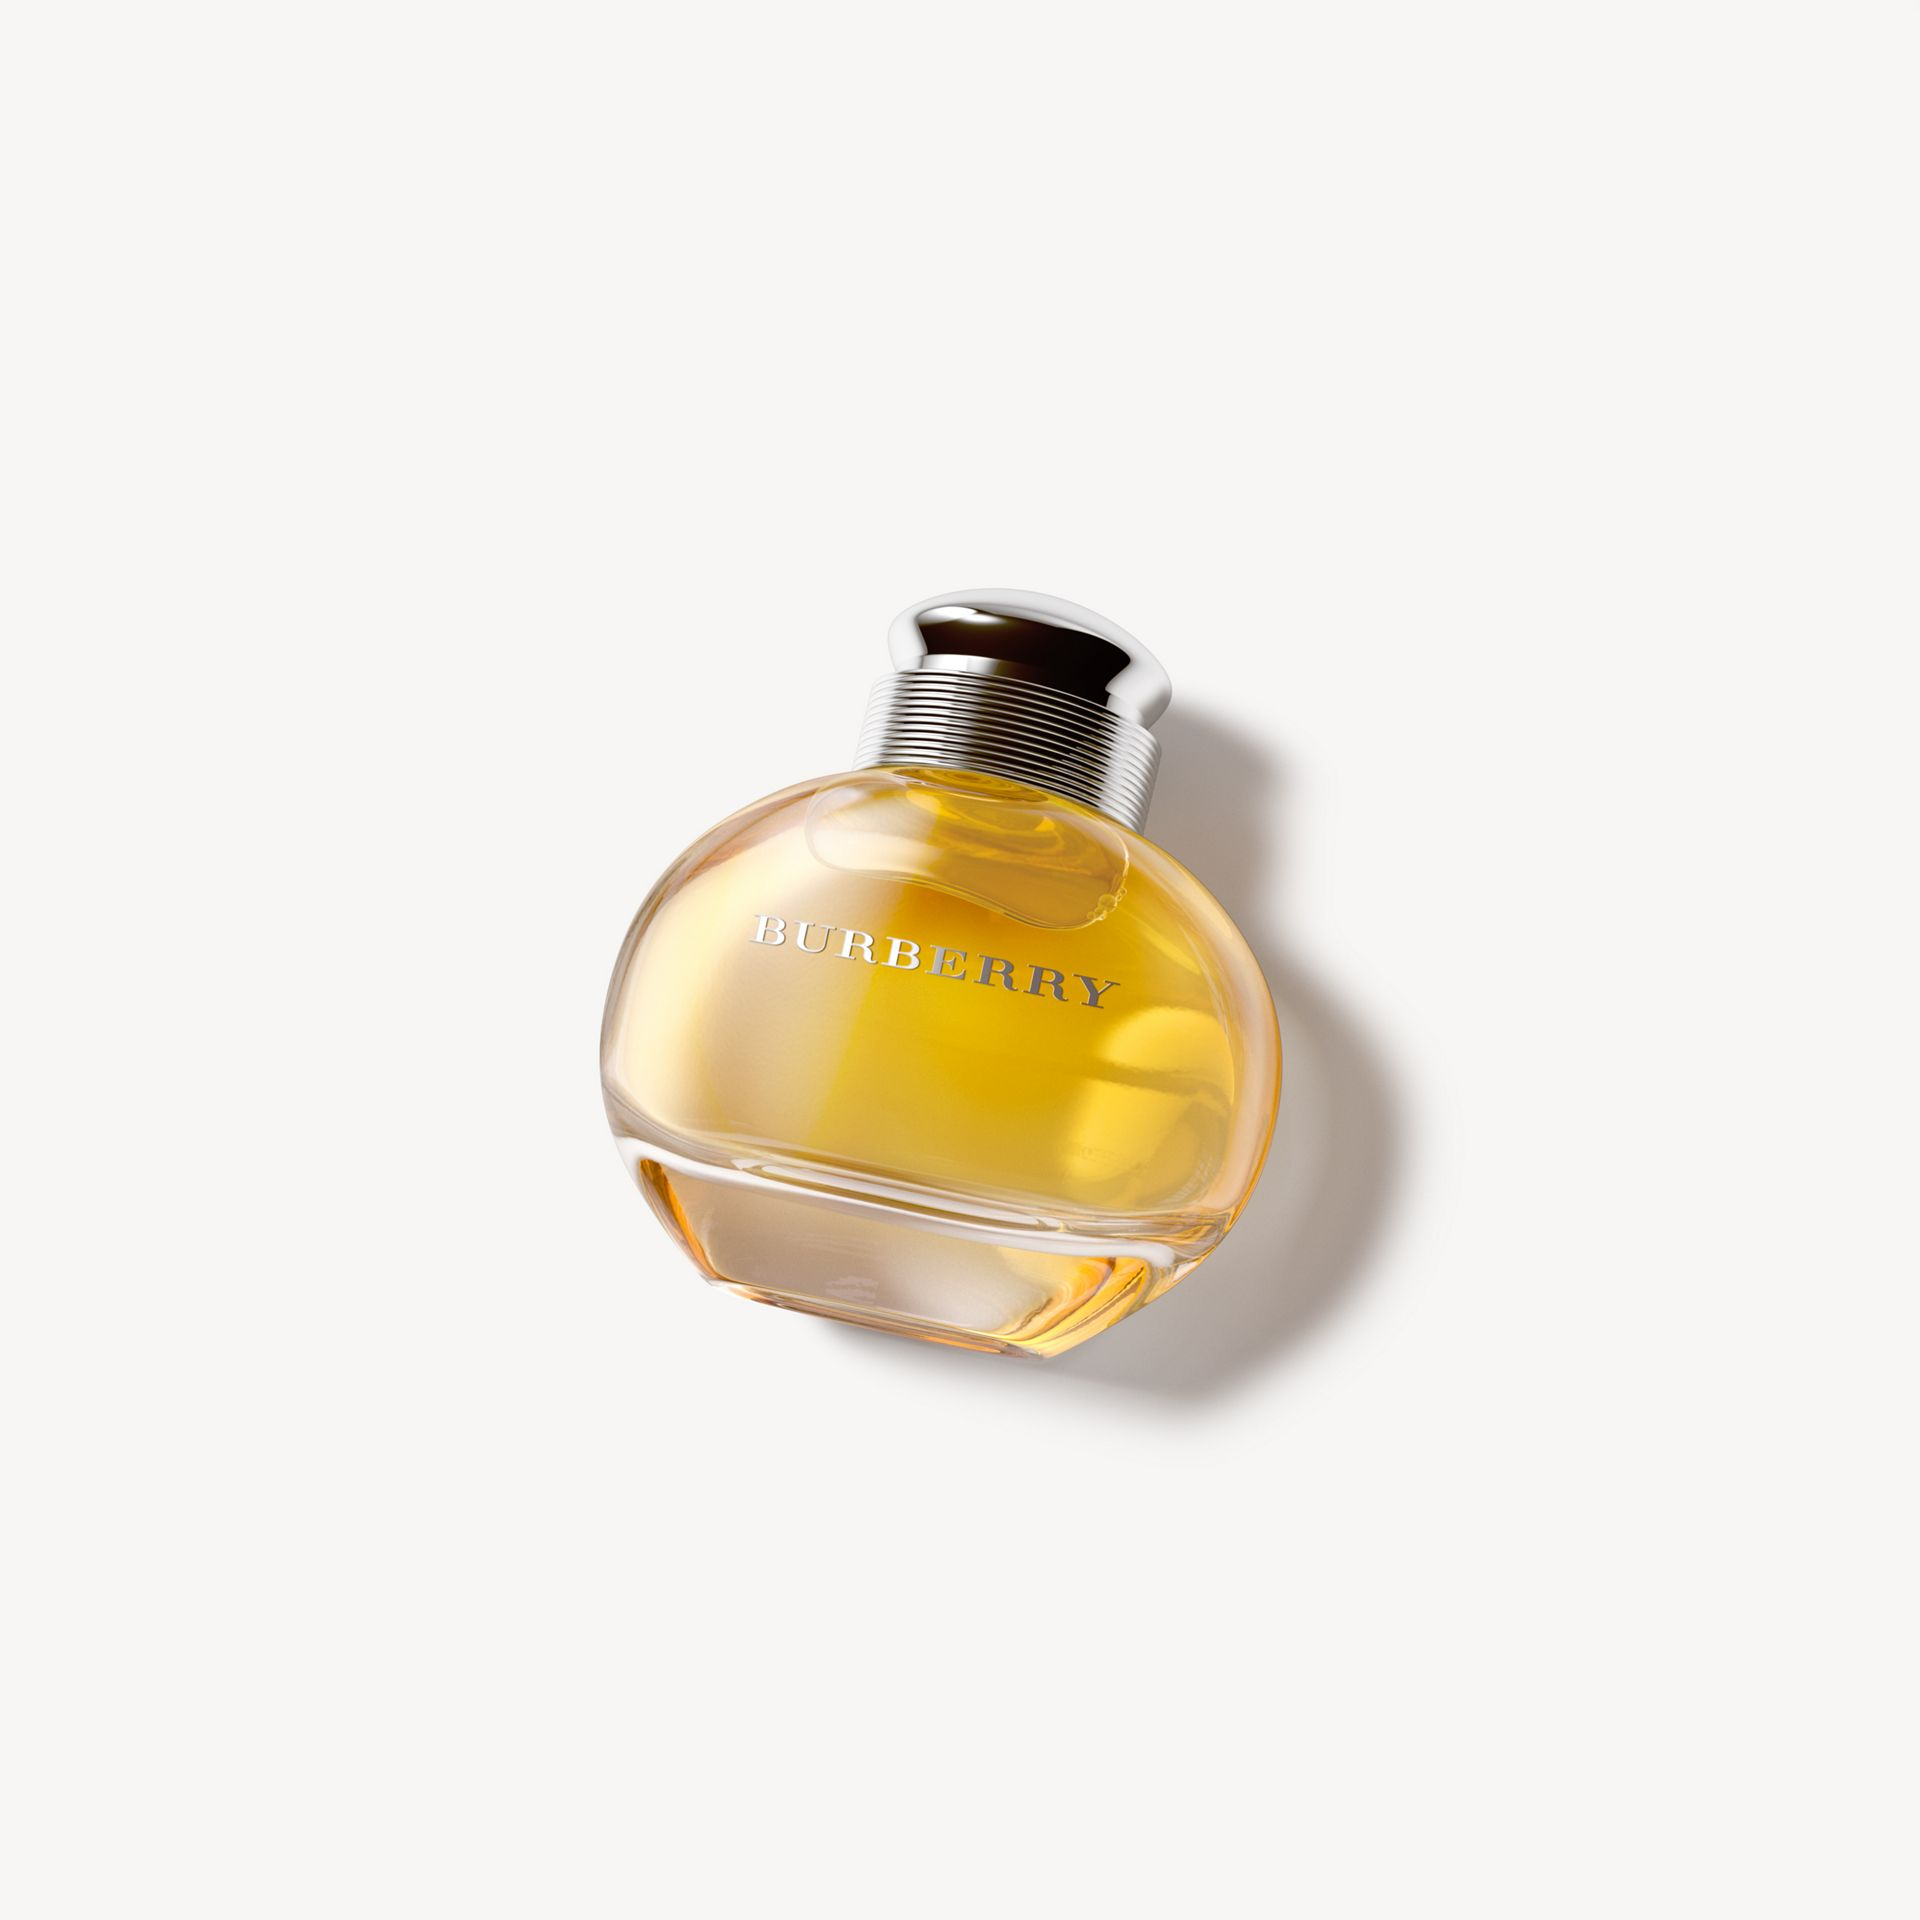 Burberry For Women Eau de Parfum 50 ml - Femme | Burberry - photo de la galerie 0